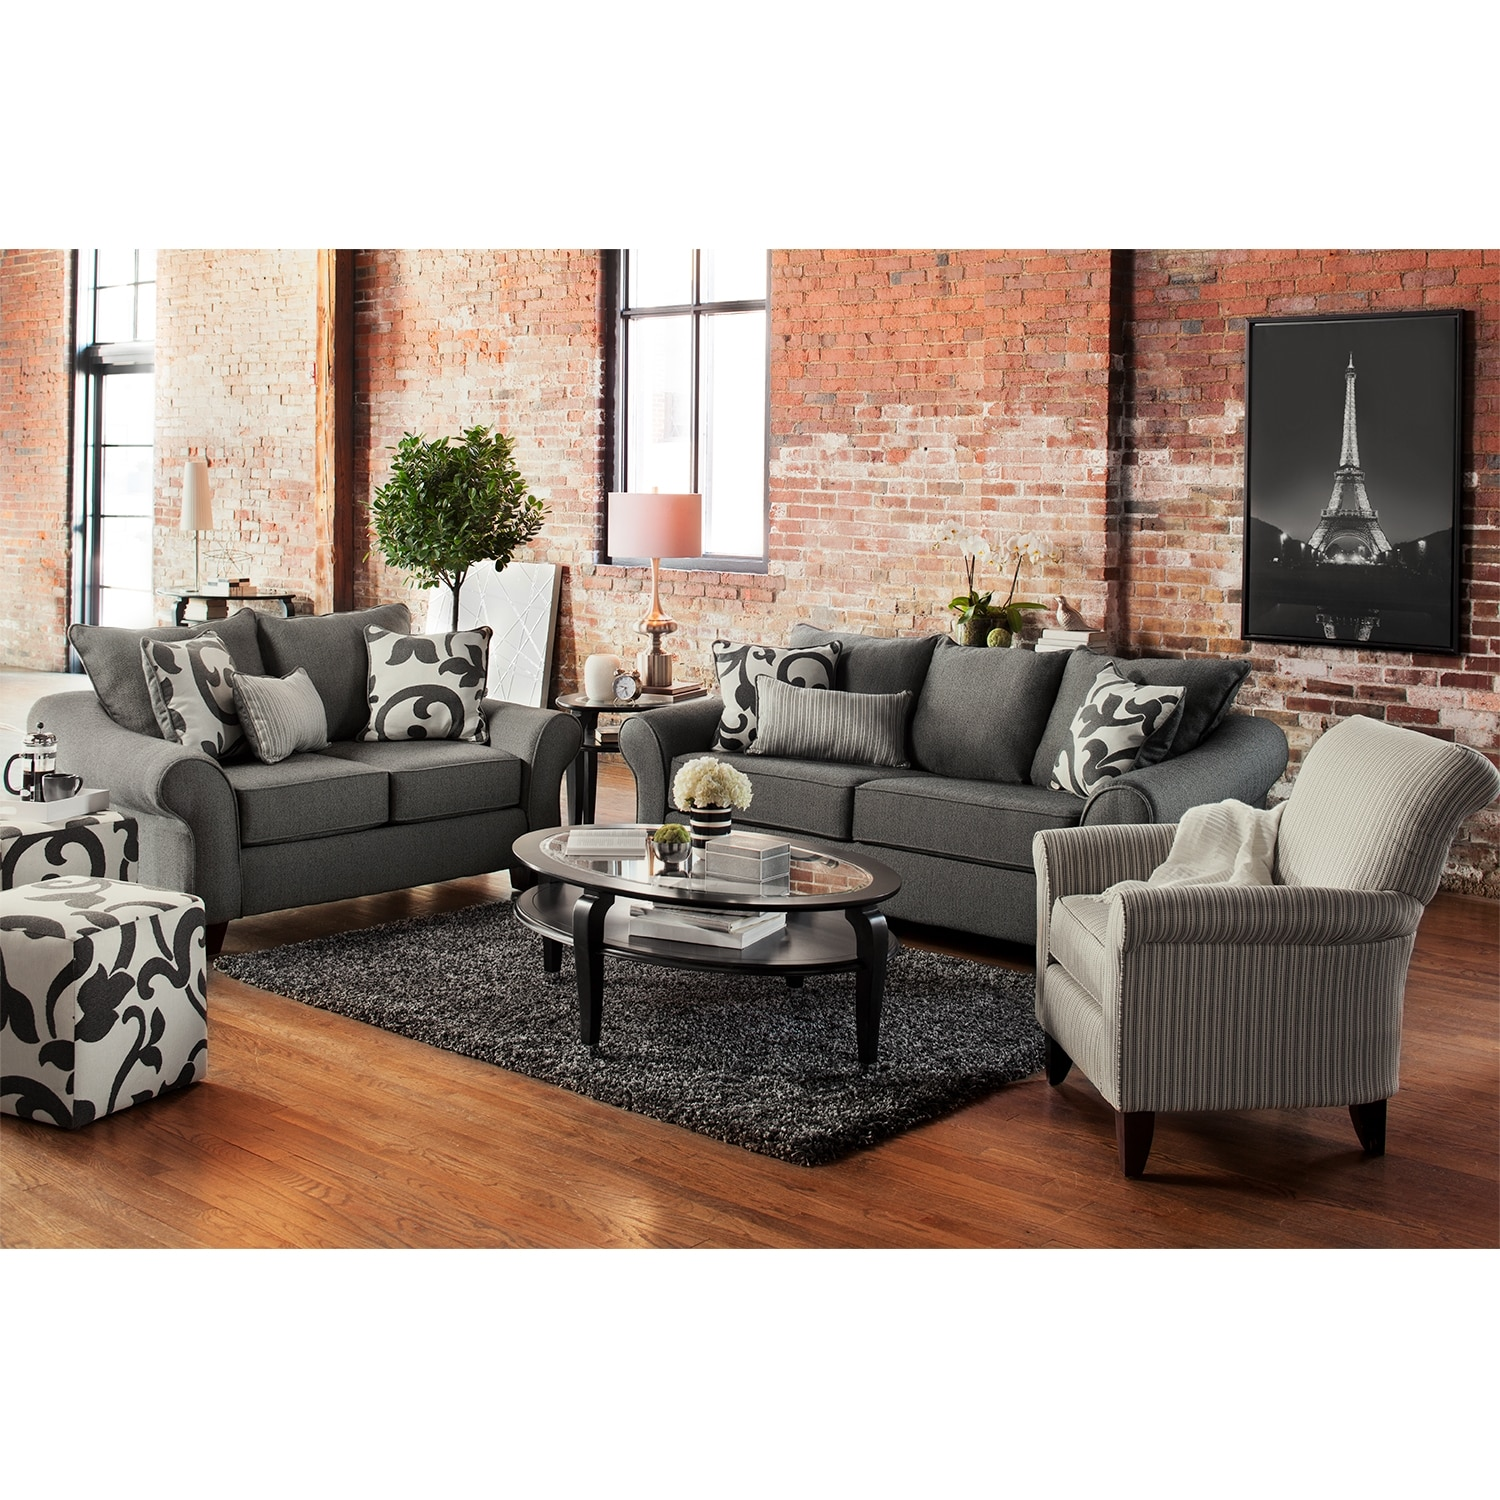 Colette gray sofa value city furniture for The living room furniture